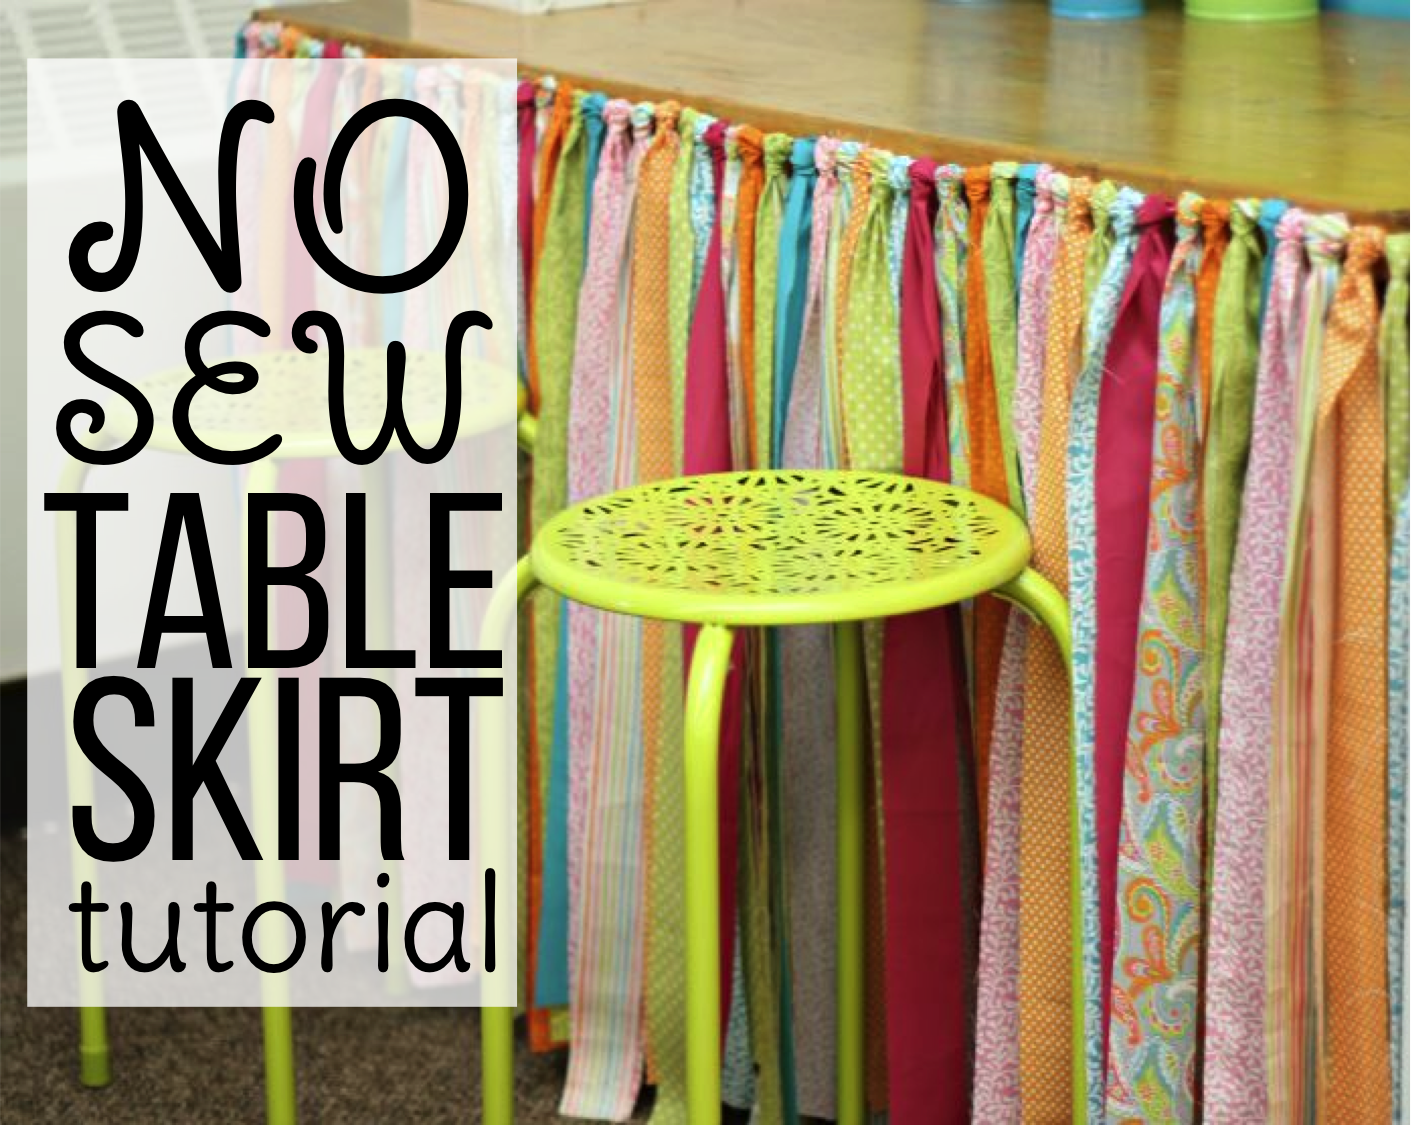 Learn How To Make A No Sew Table Skirt For You Classroom Or Home With This